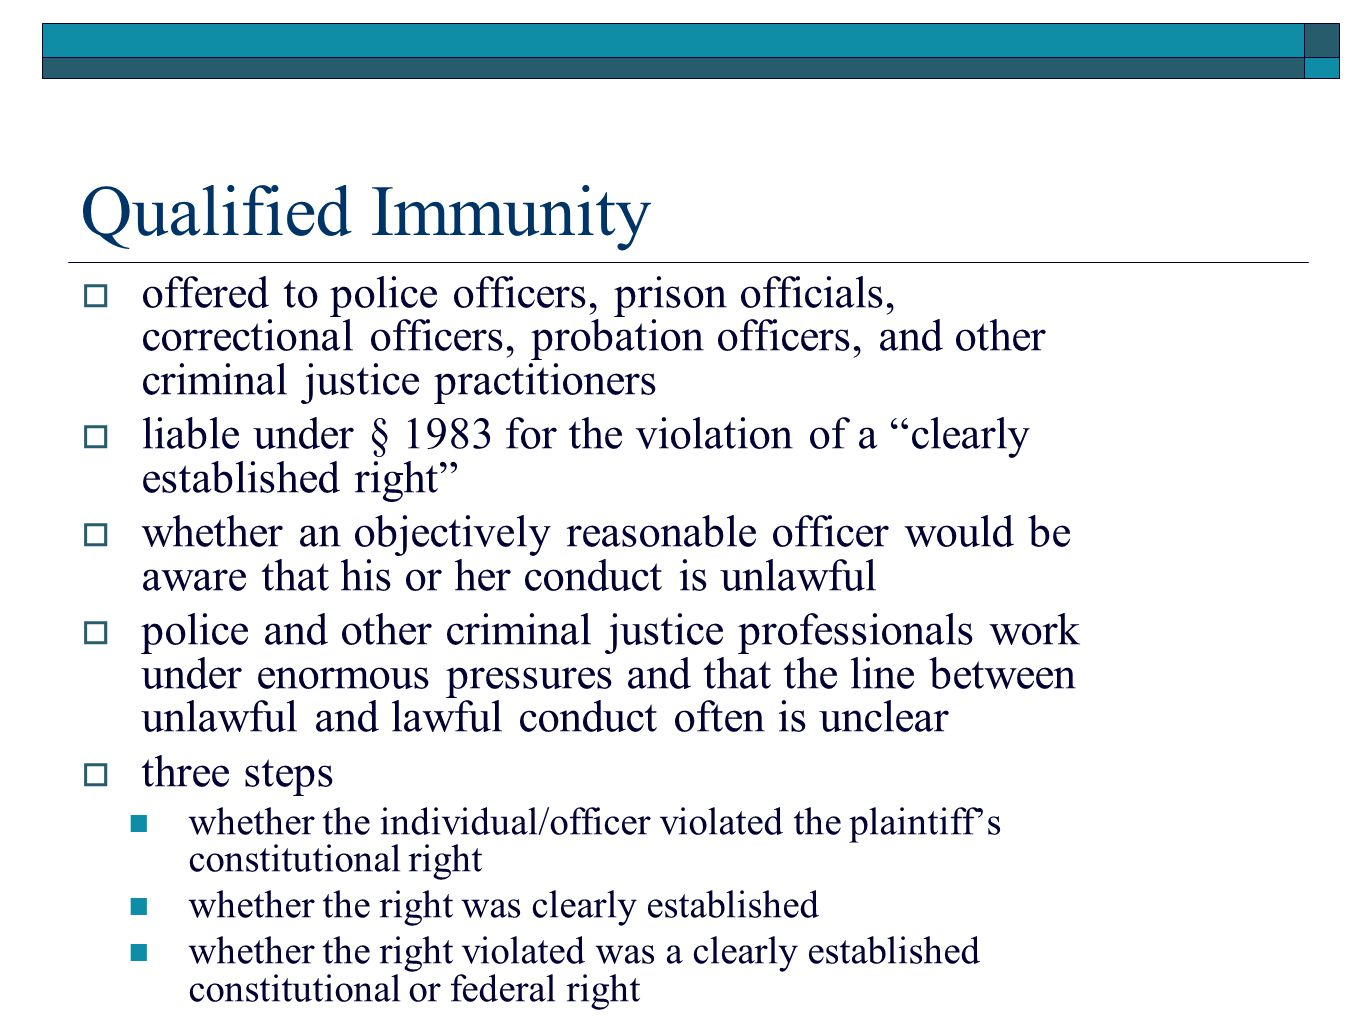 Qualified Immunity offered to police officers, prison officials, correctional officers, probation officers, and other criminal justice practitioners.